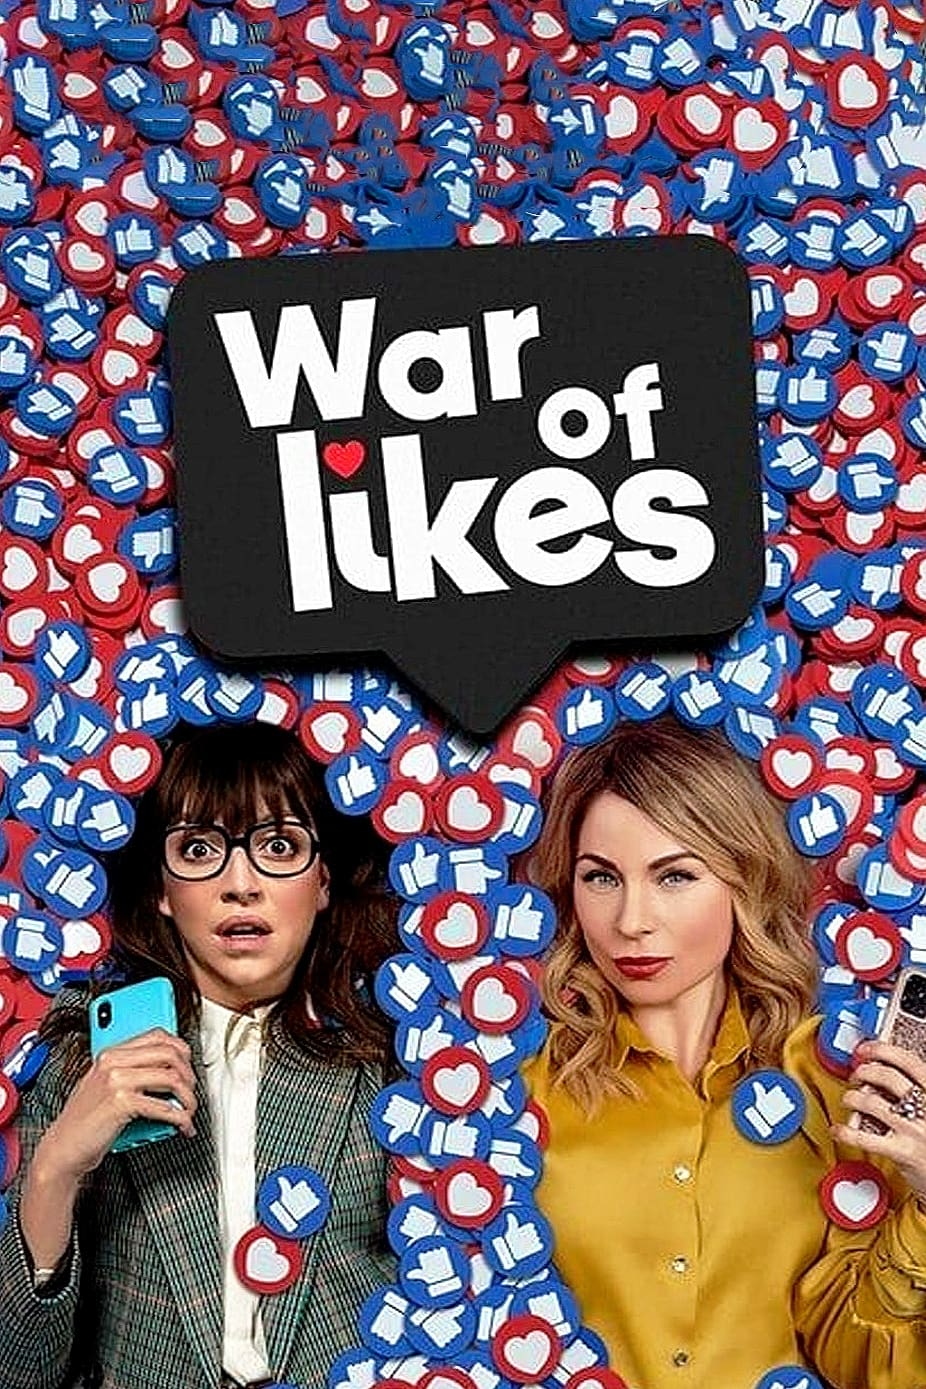 Image War of Likes